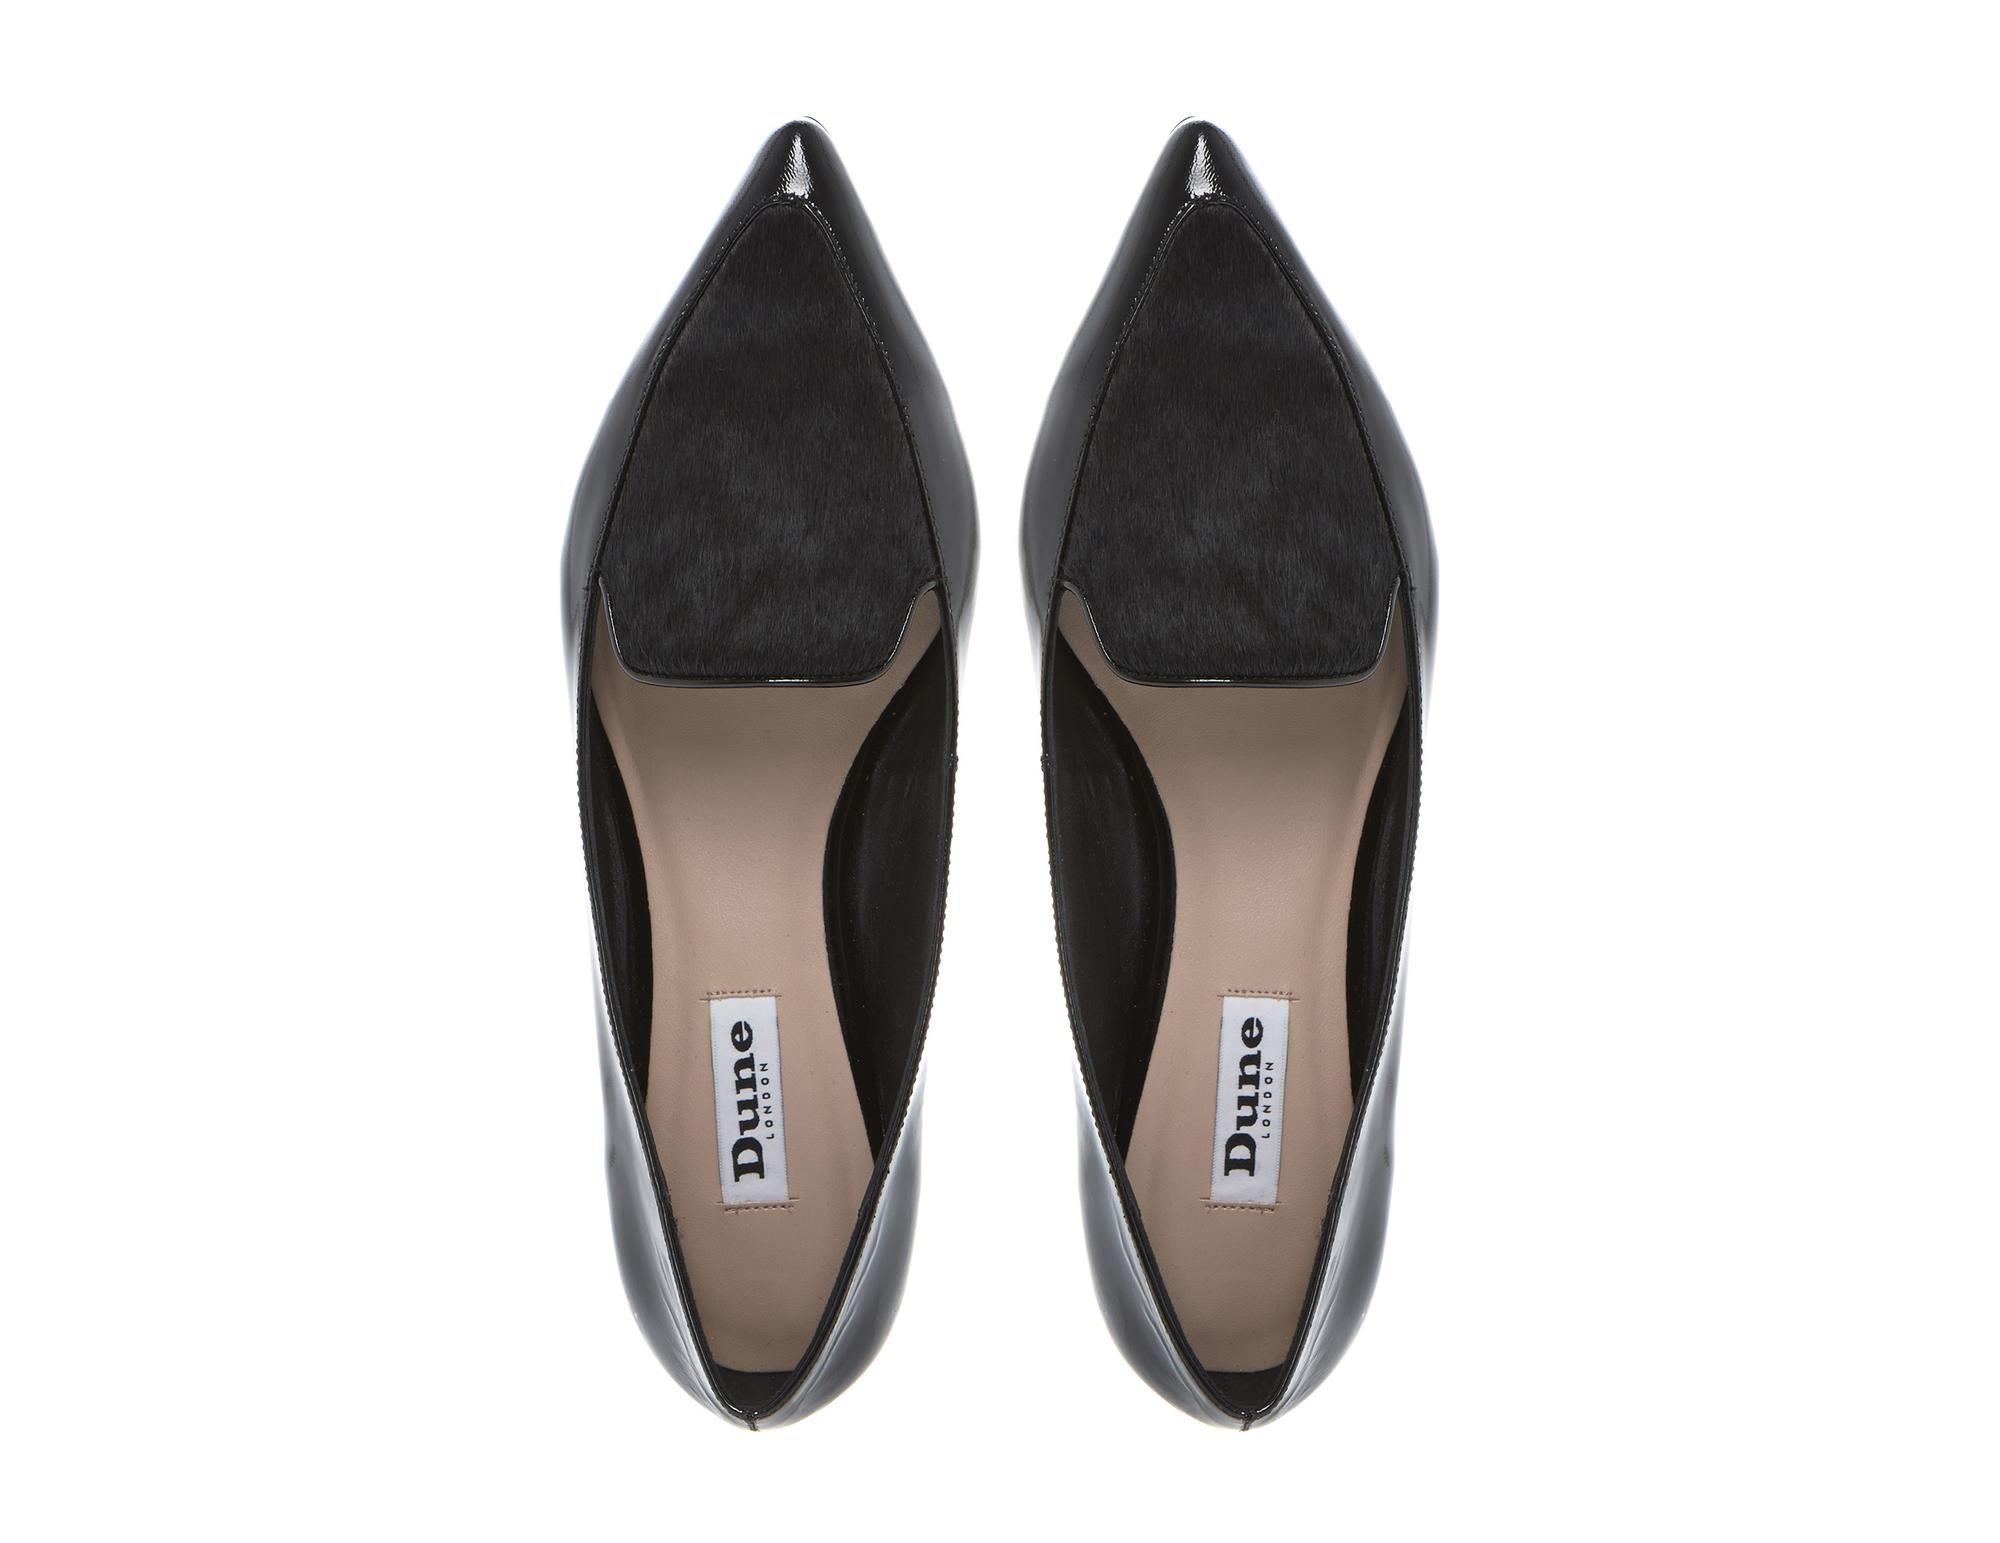 87ee8a21cba DUNE LADIES AUSTINE - Contrast Detail Pointed Toe Dressy Loafer - black